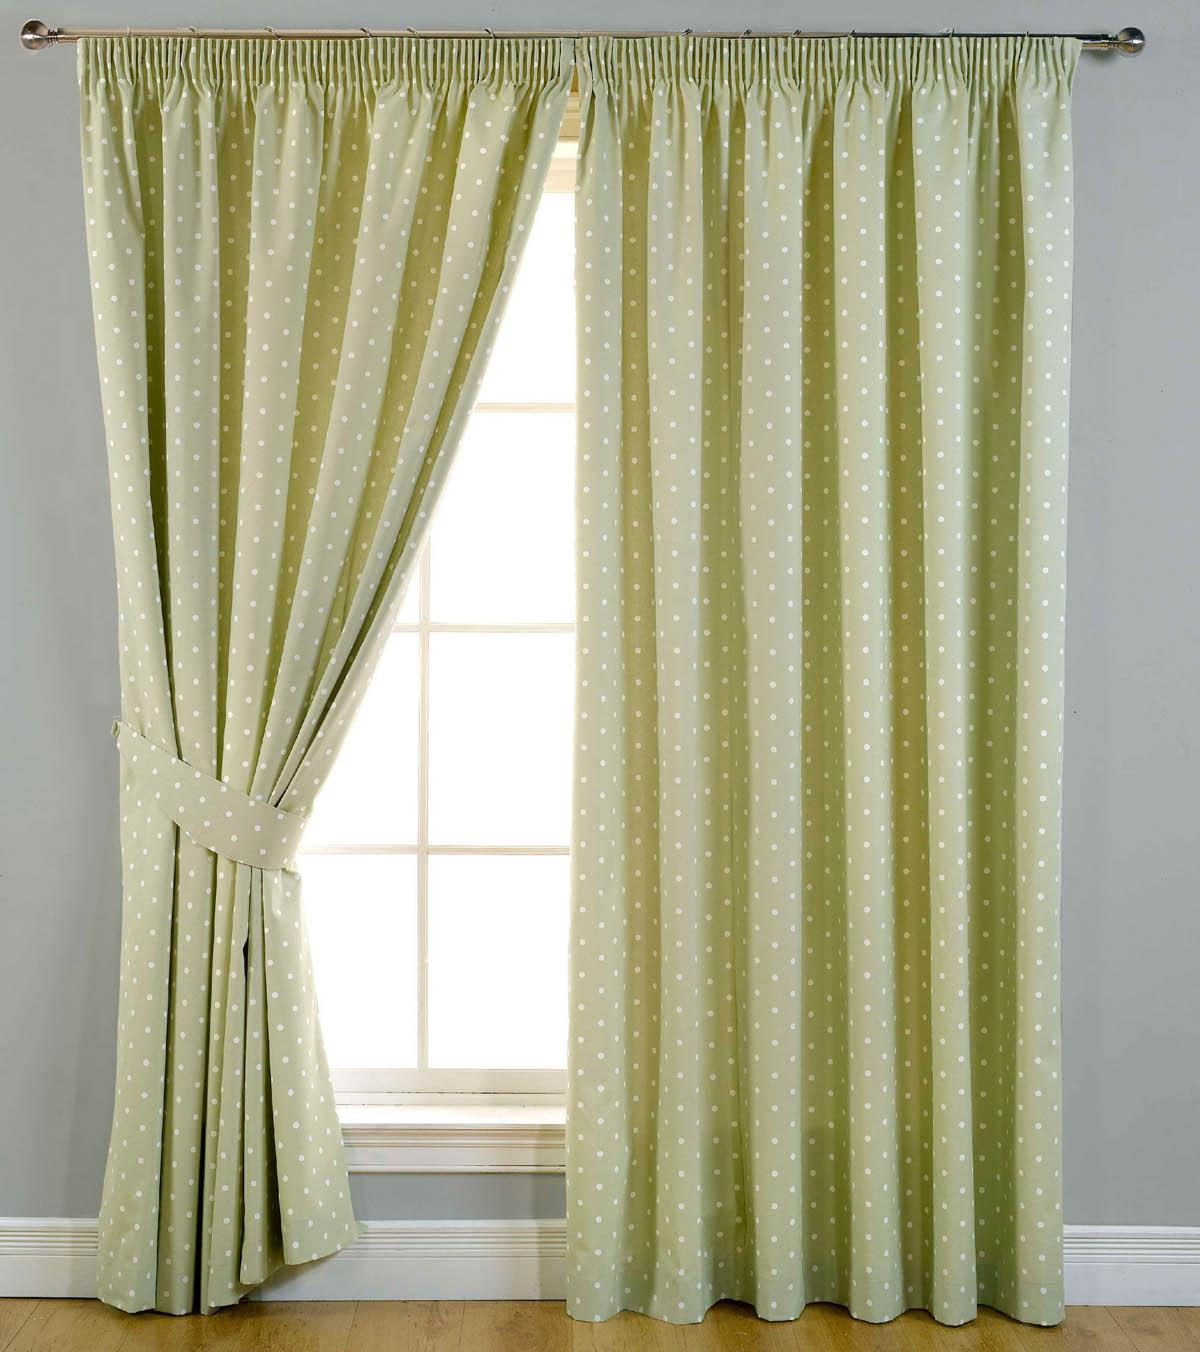 Dotty Ready Made Blackout Curtains Sage